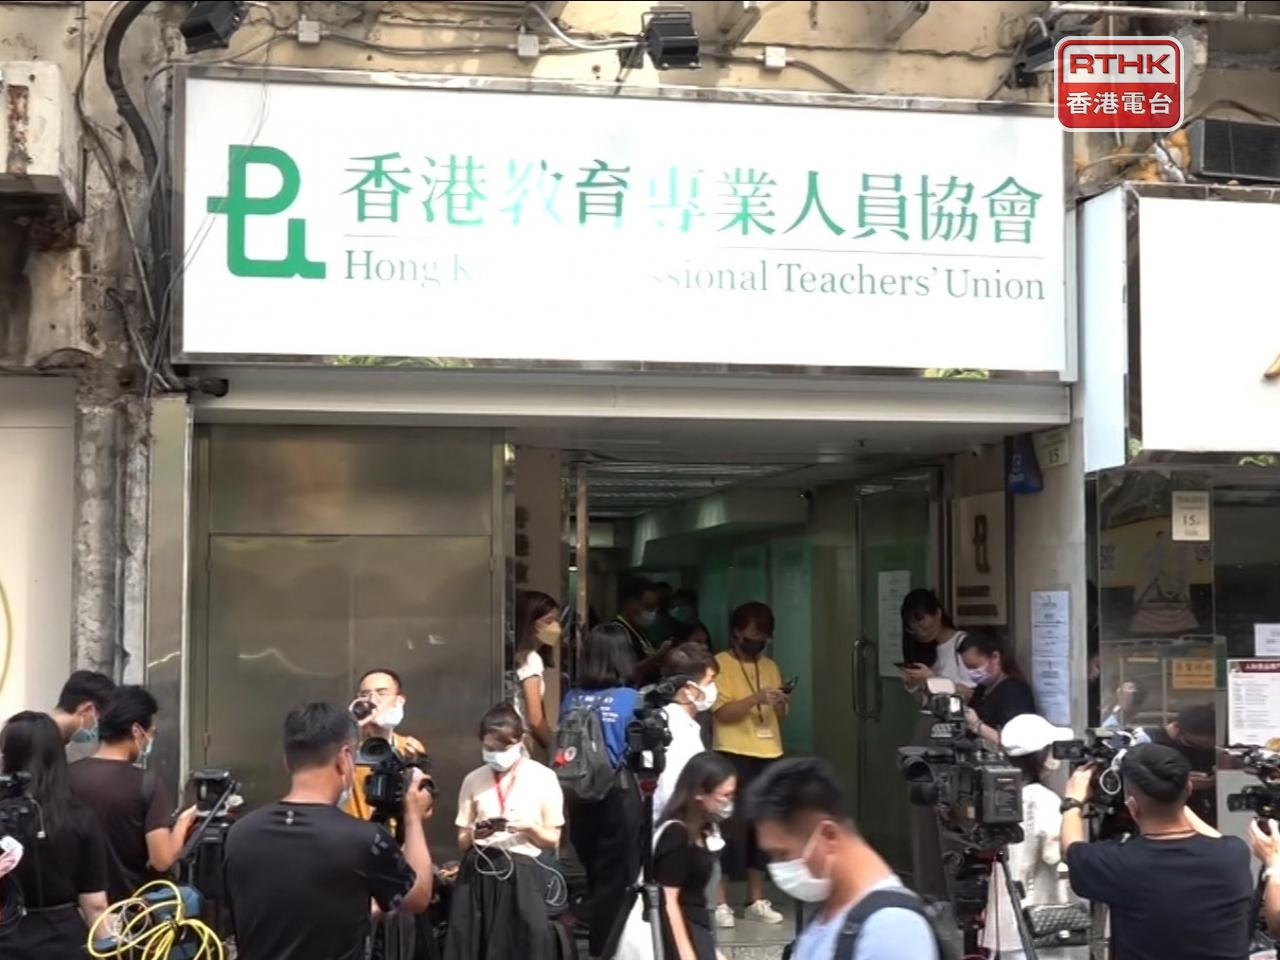 The Professional Teachers' Union will start letting go of its staff and other dissolution procedures following Saturday's special meeting. Photo: RTHK